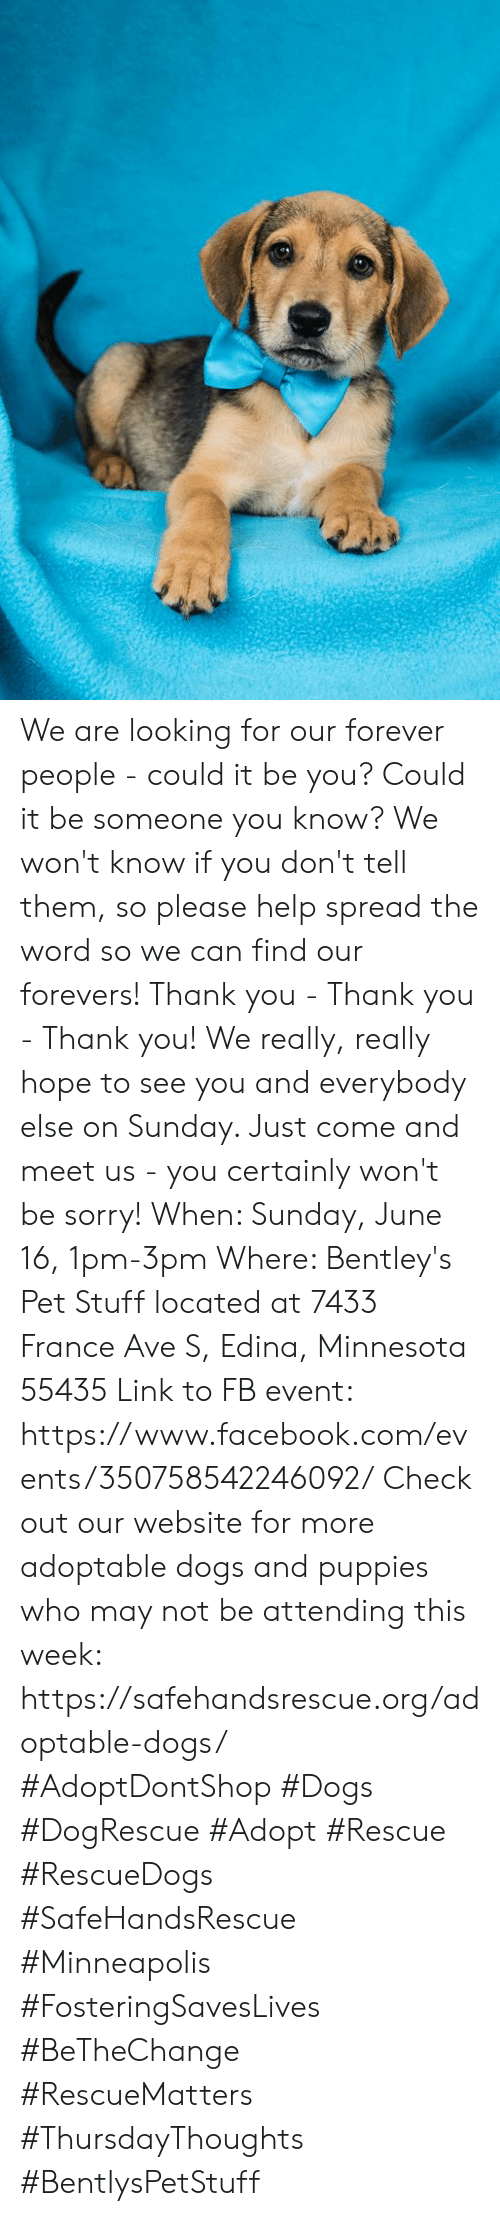 Dogs, Facebook, and Memes: We are looking for our forever people - could it be you? Could it be someone you know? We won't know if you don't tell them, so please help spread the word so we can find our forevers! Thank you - Thank you - Thank you! We really, really hope to see you and everybody else on Sunday. Just come and meet us - you certainly won't be sorry!  When: Sunday, June 16, 1pm-3pm  Where: Bentley's Pet Stuff located at 7433 France Ave S, Edina, Minnesota 55435 Link to FB event: https://www.facebook.com/events/350758542246092/  Check out our website for more adoptable dogs and puppies who may not be attending this week: https://safehandsrescue.org/adoptable-dogs/  #AdoptDontShop #Dogs #DogRescue #Adopt #Rescue #RescueDogs #SafeHandsRescue #Minneapolis #FosteringSavesLives #BeTheChange #RescueMatters #ThursdayThoughts #BentlysPetStuff